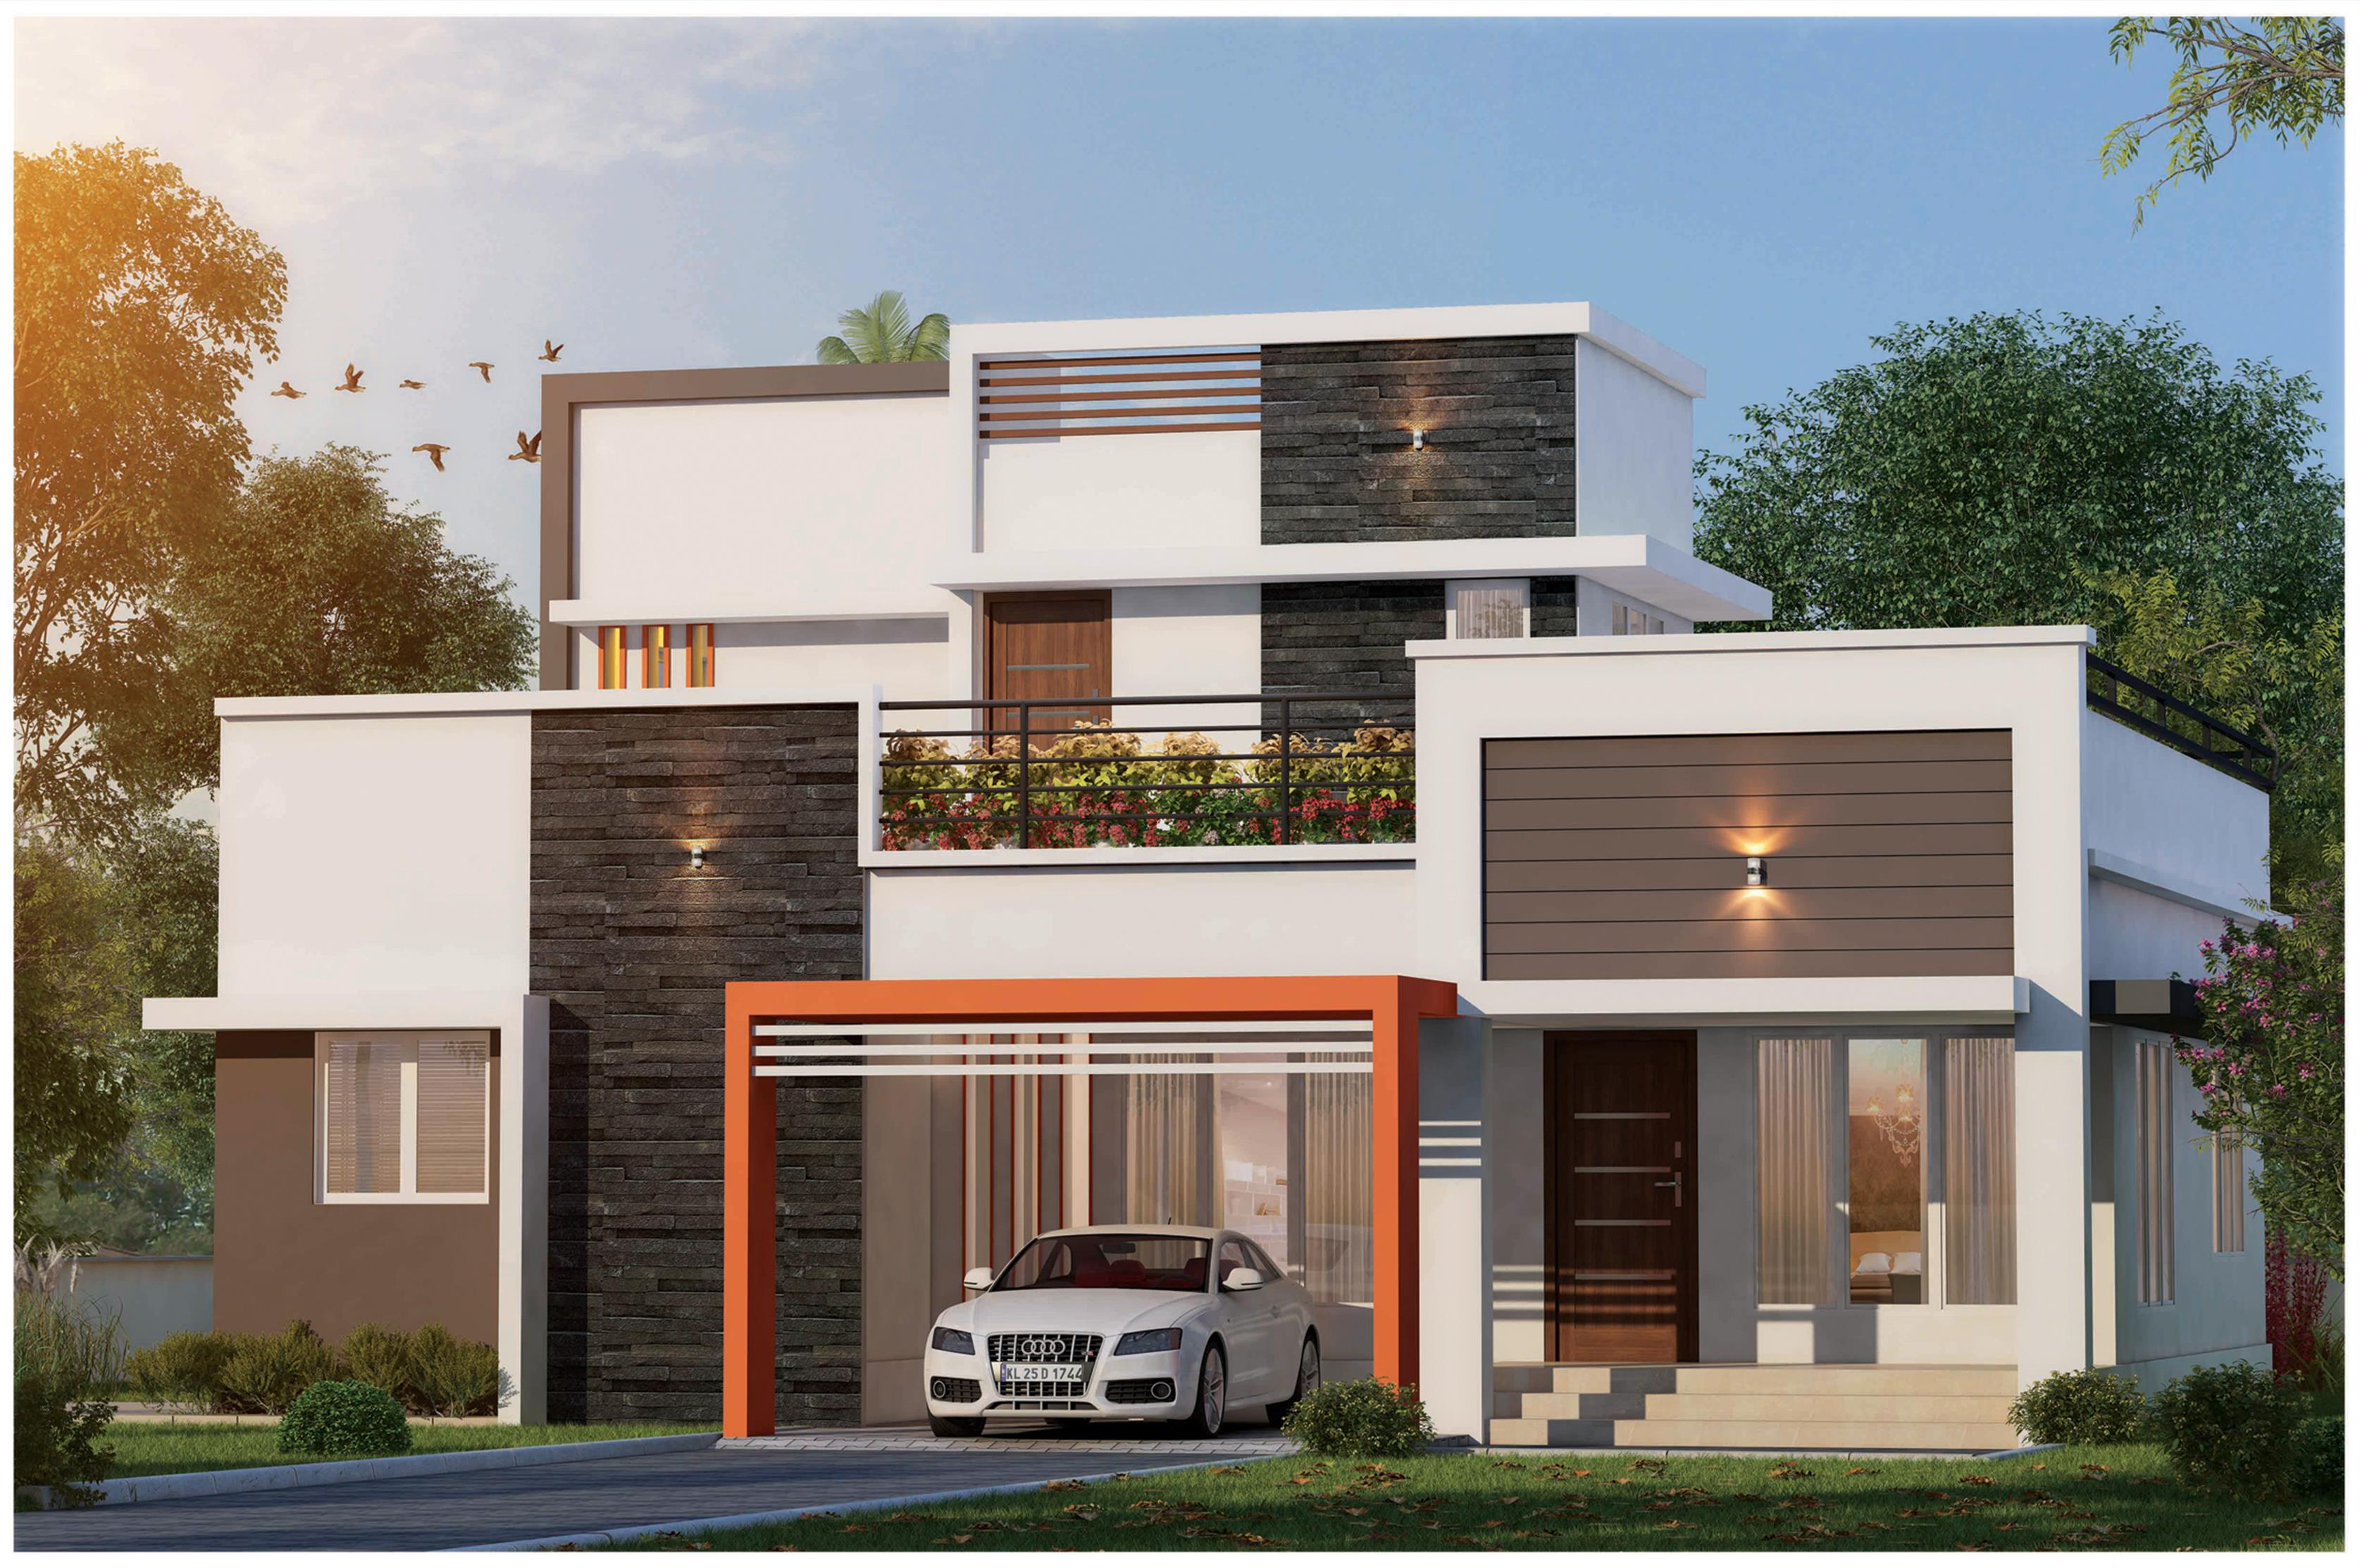 4 BHK 4 Bathroom 2500 Sqft Villa projects in Thrissur | Best builders in thrissur